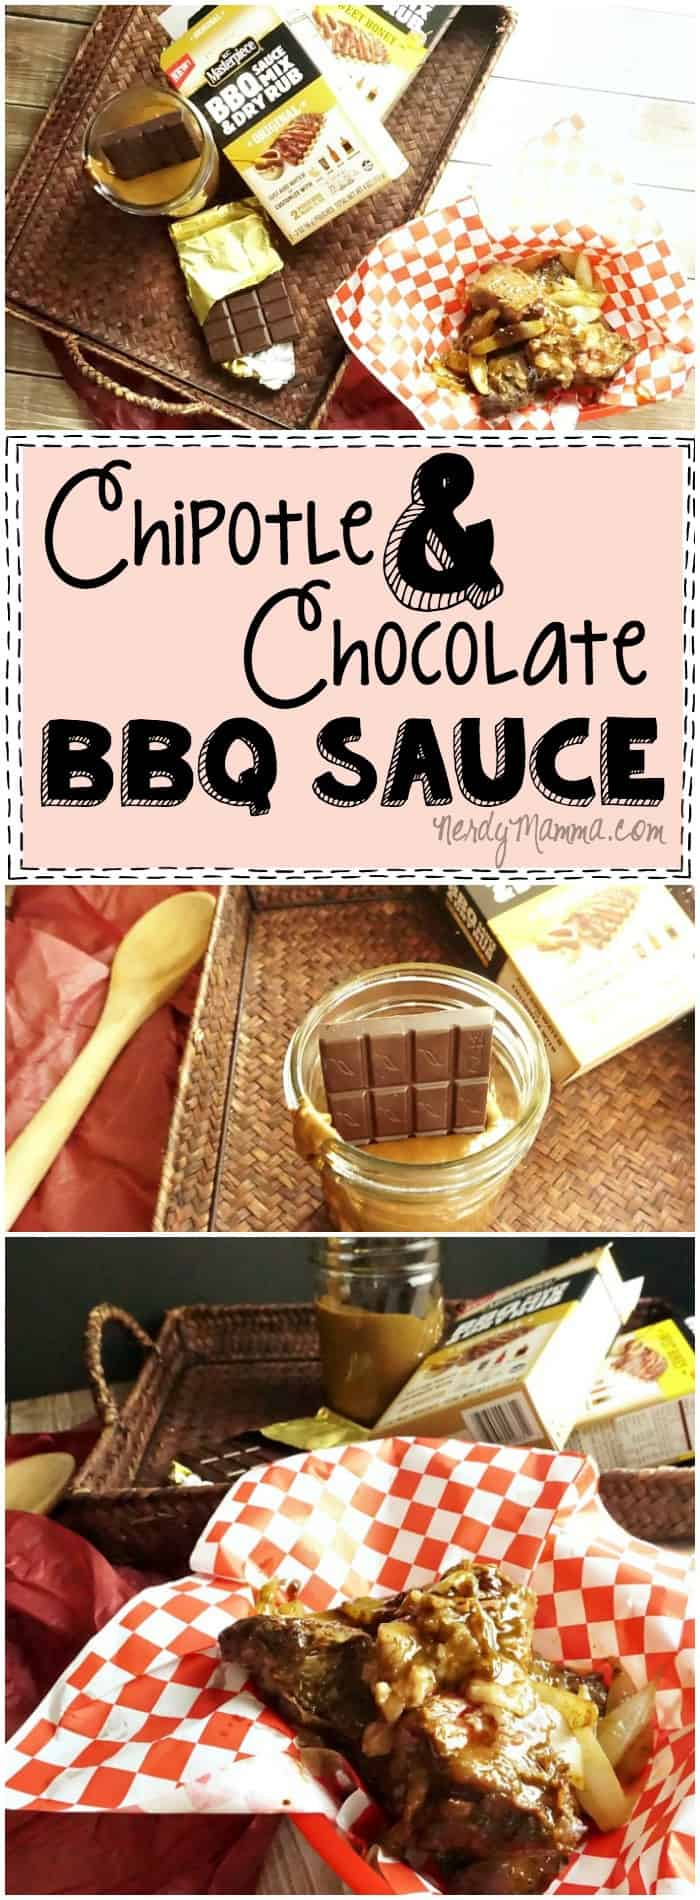 This recipe for Chipotle and Chocolate BBQ Sauce sounds so...interesting. I love the idea. Can't wait to try it...